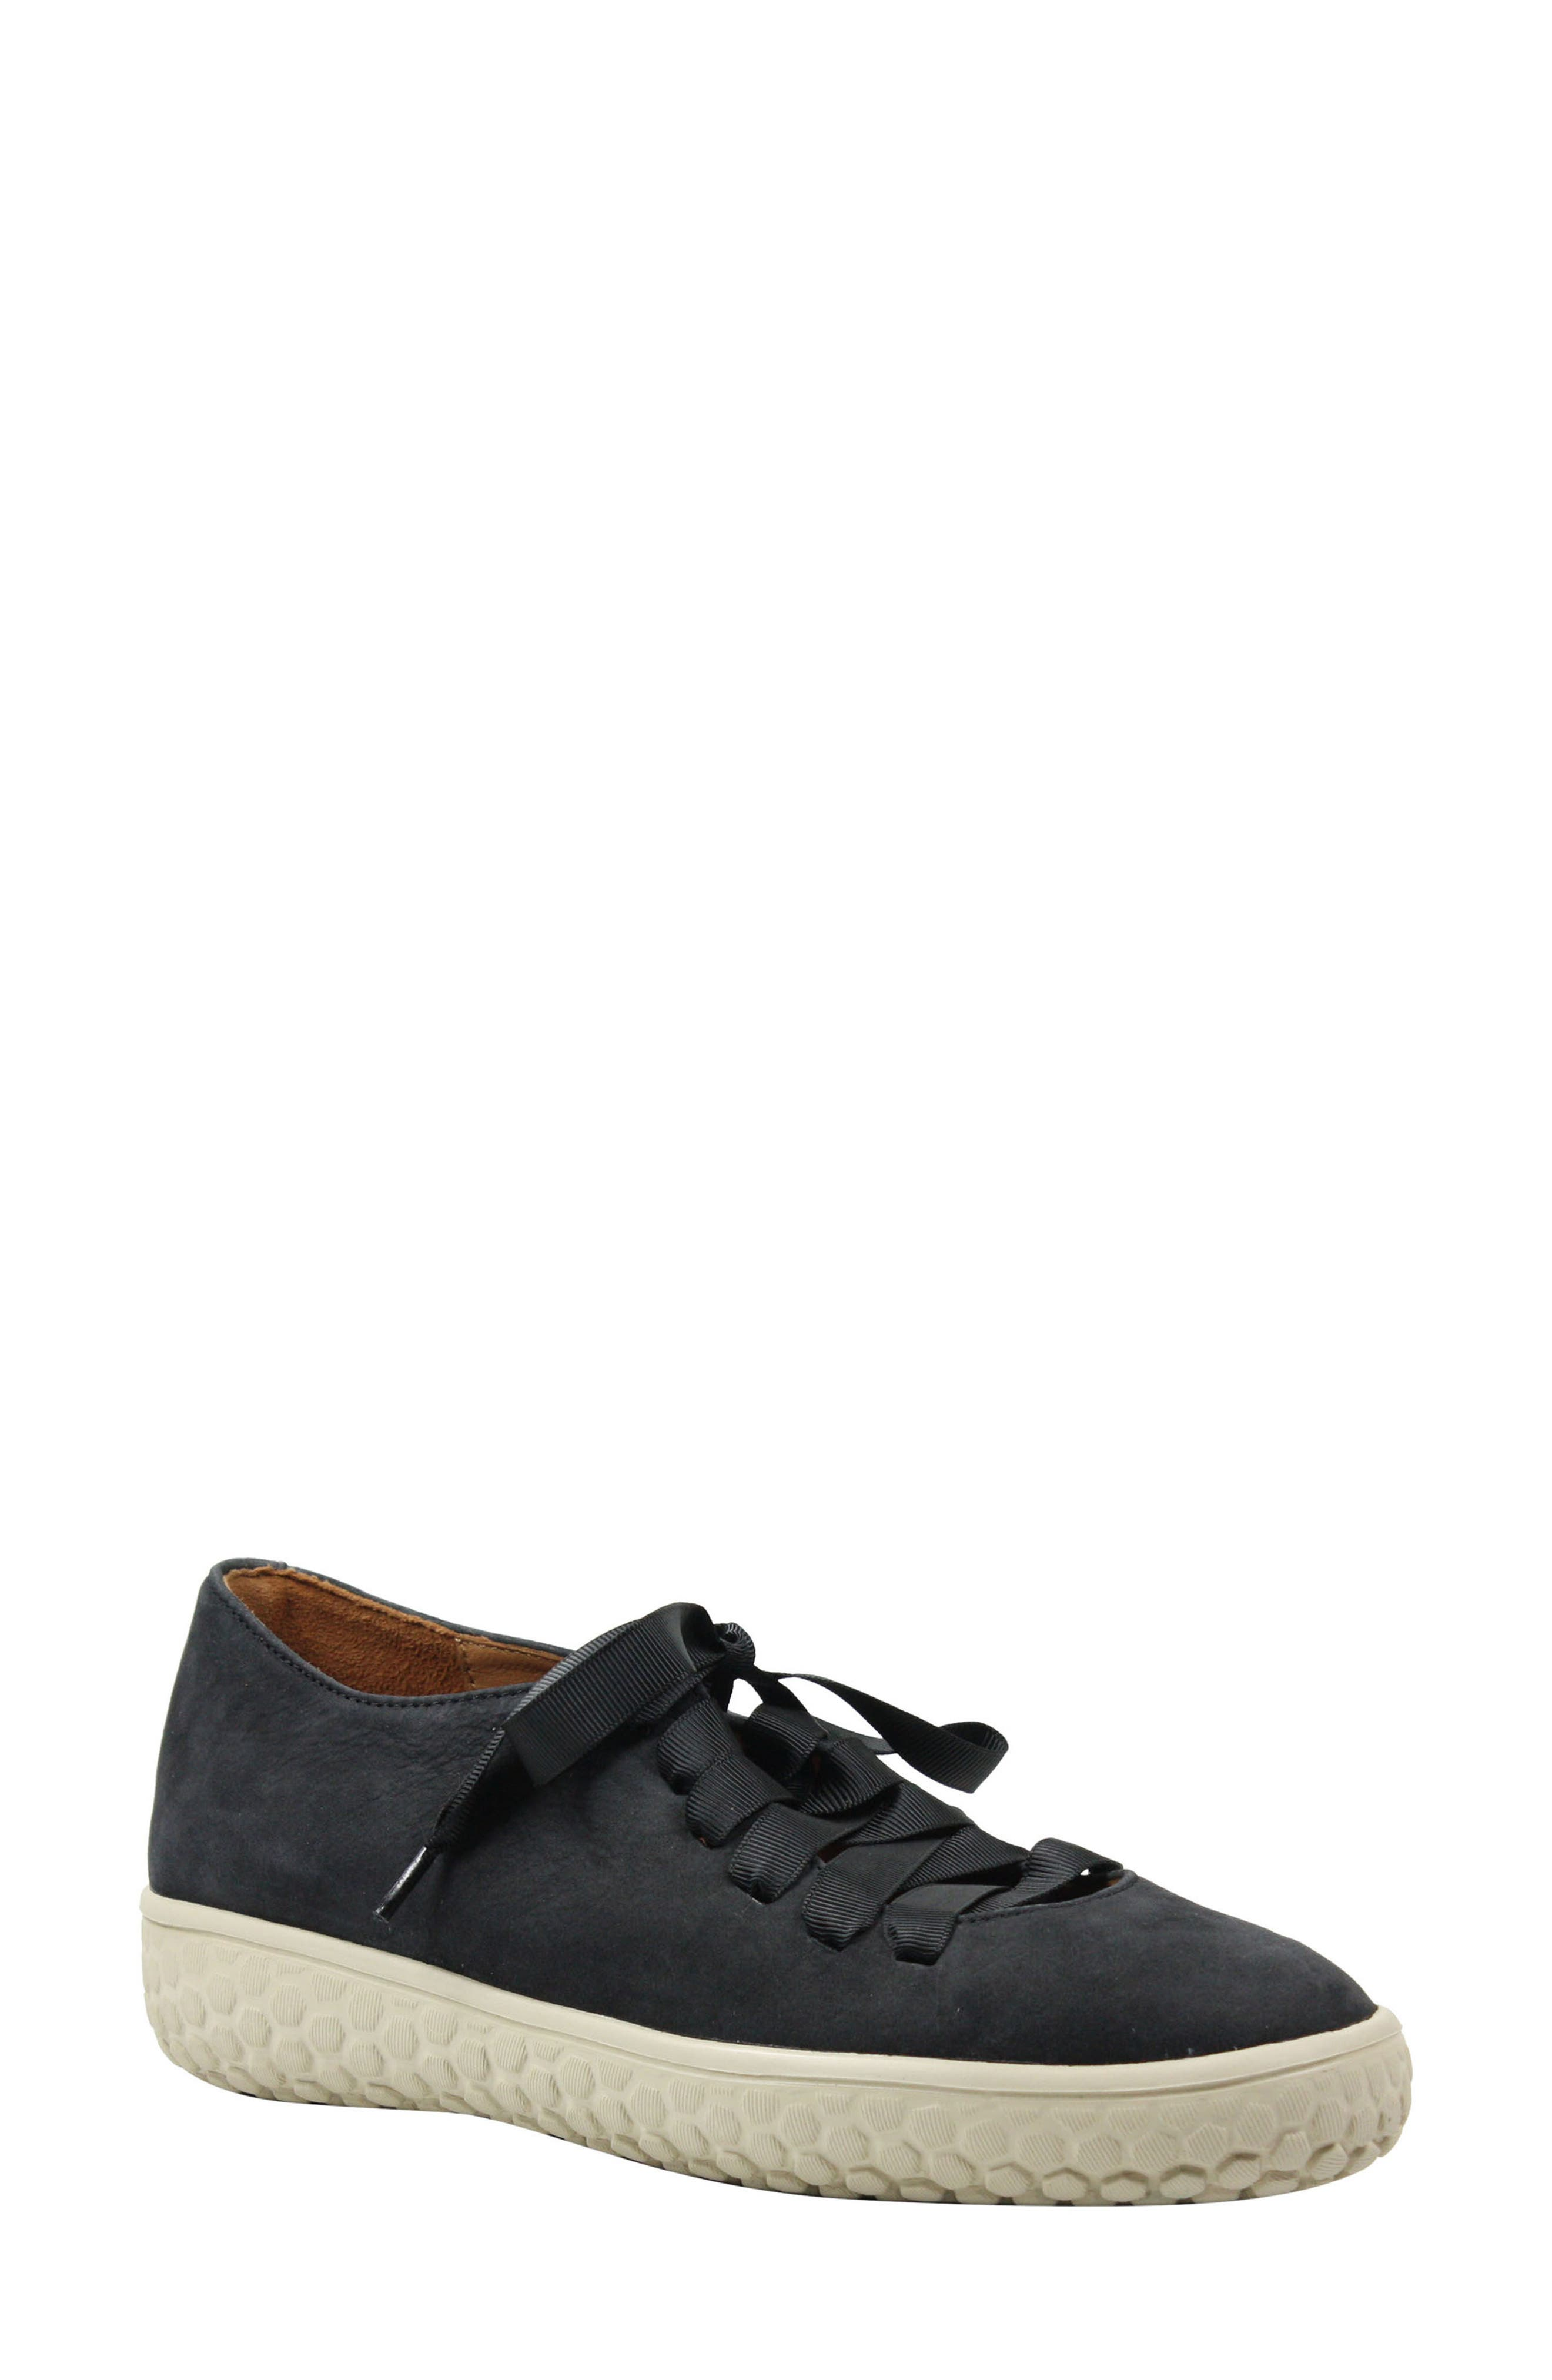 Zaheera Sneaker,                             Main thumbnail 1, color,                             Black Nubuck Leather